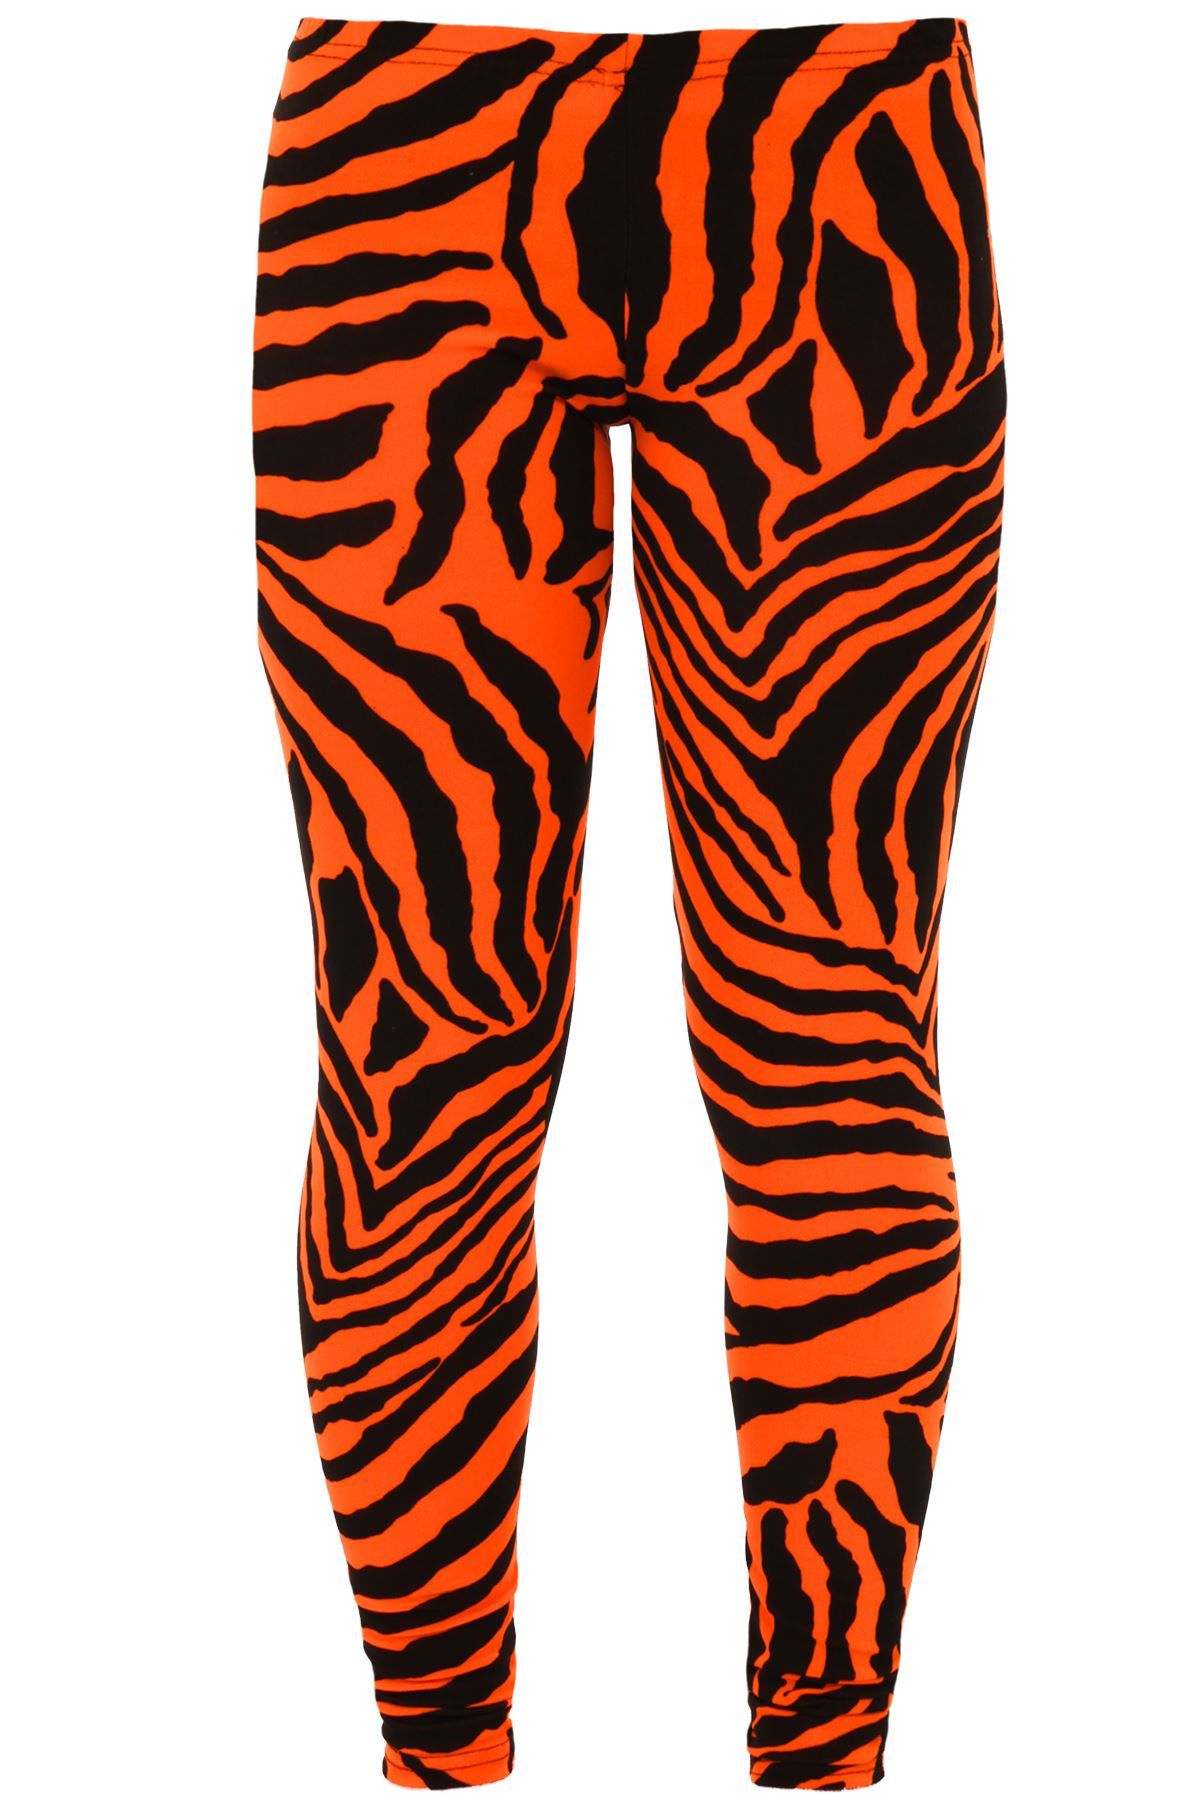 Our Zebra Leggings take an authentic zebra style and mimic the look on these amazing animal print leggings. Every woman's fashio wardrobe needs one or two great looking animal prints and this is one that you are going to find compliments your entire collection.